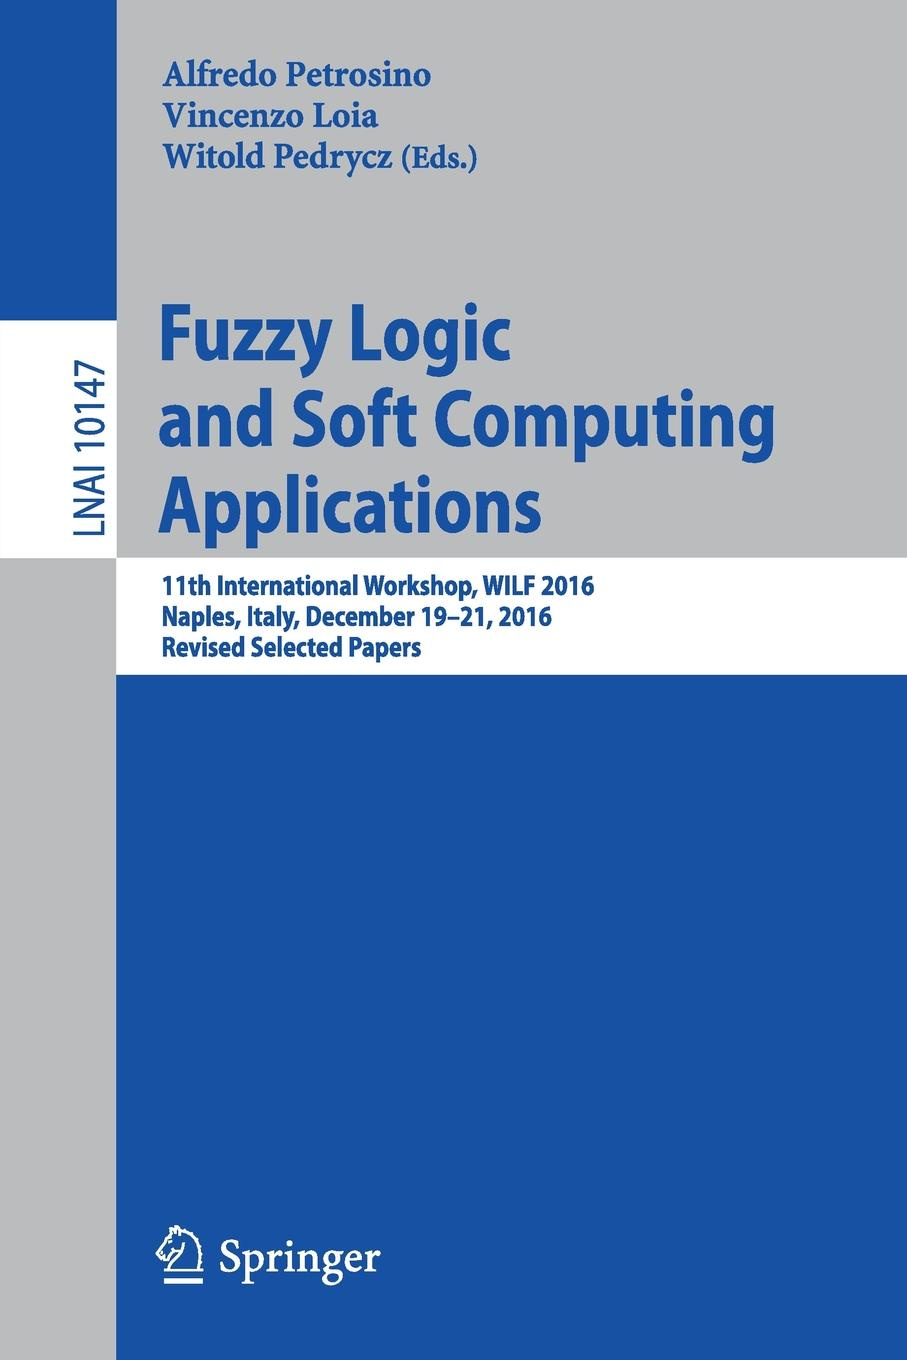 Fuzzy Logic and Soft Computing Applications. 11th International Workshop, WILF 2016, Naples, Italy, December 19-21, 2016, Revised Selected Papers